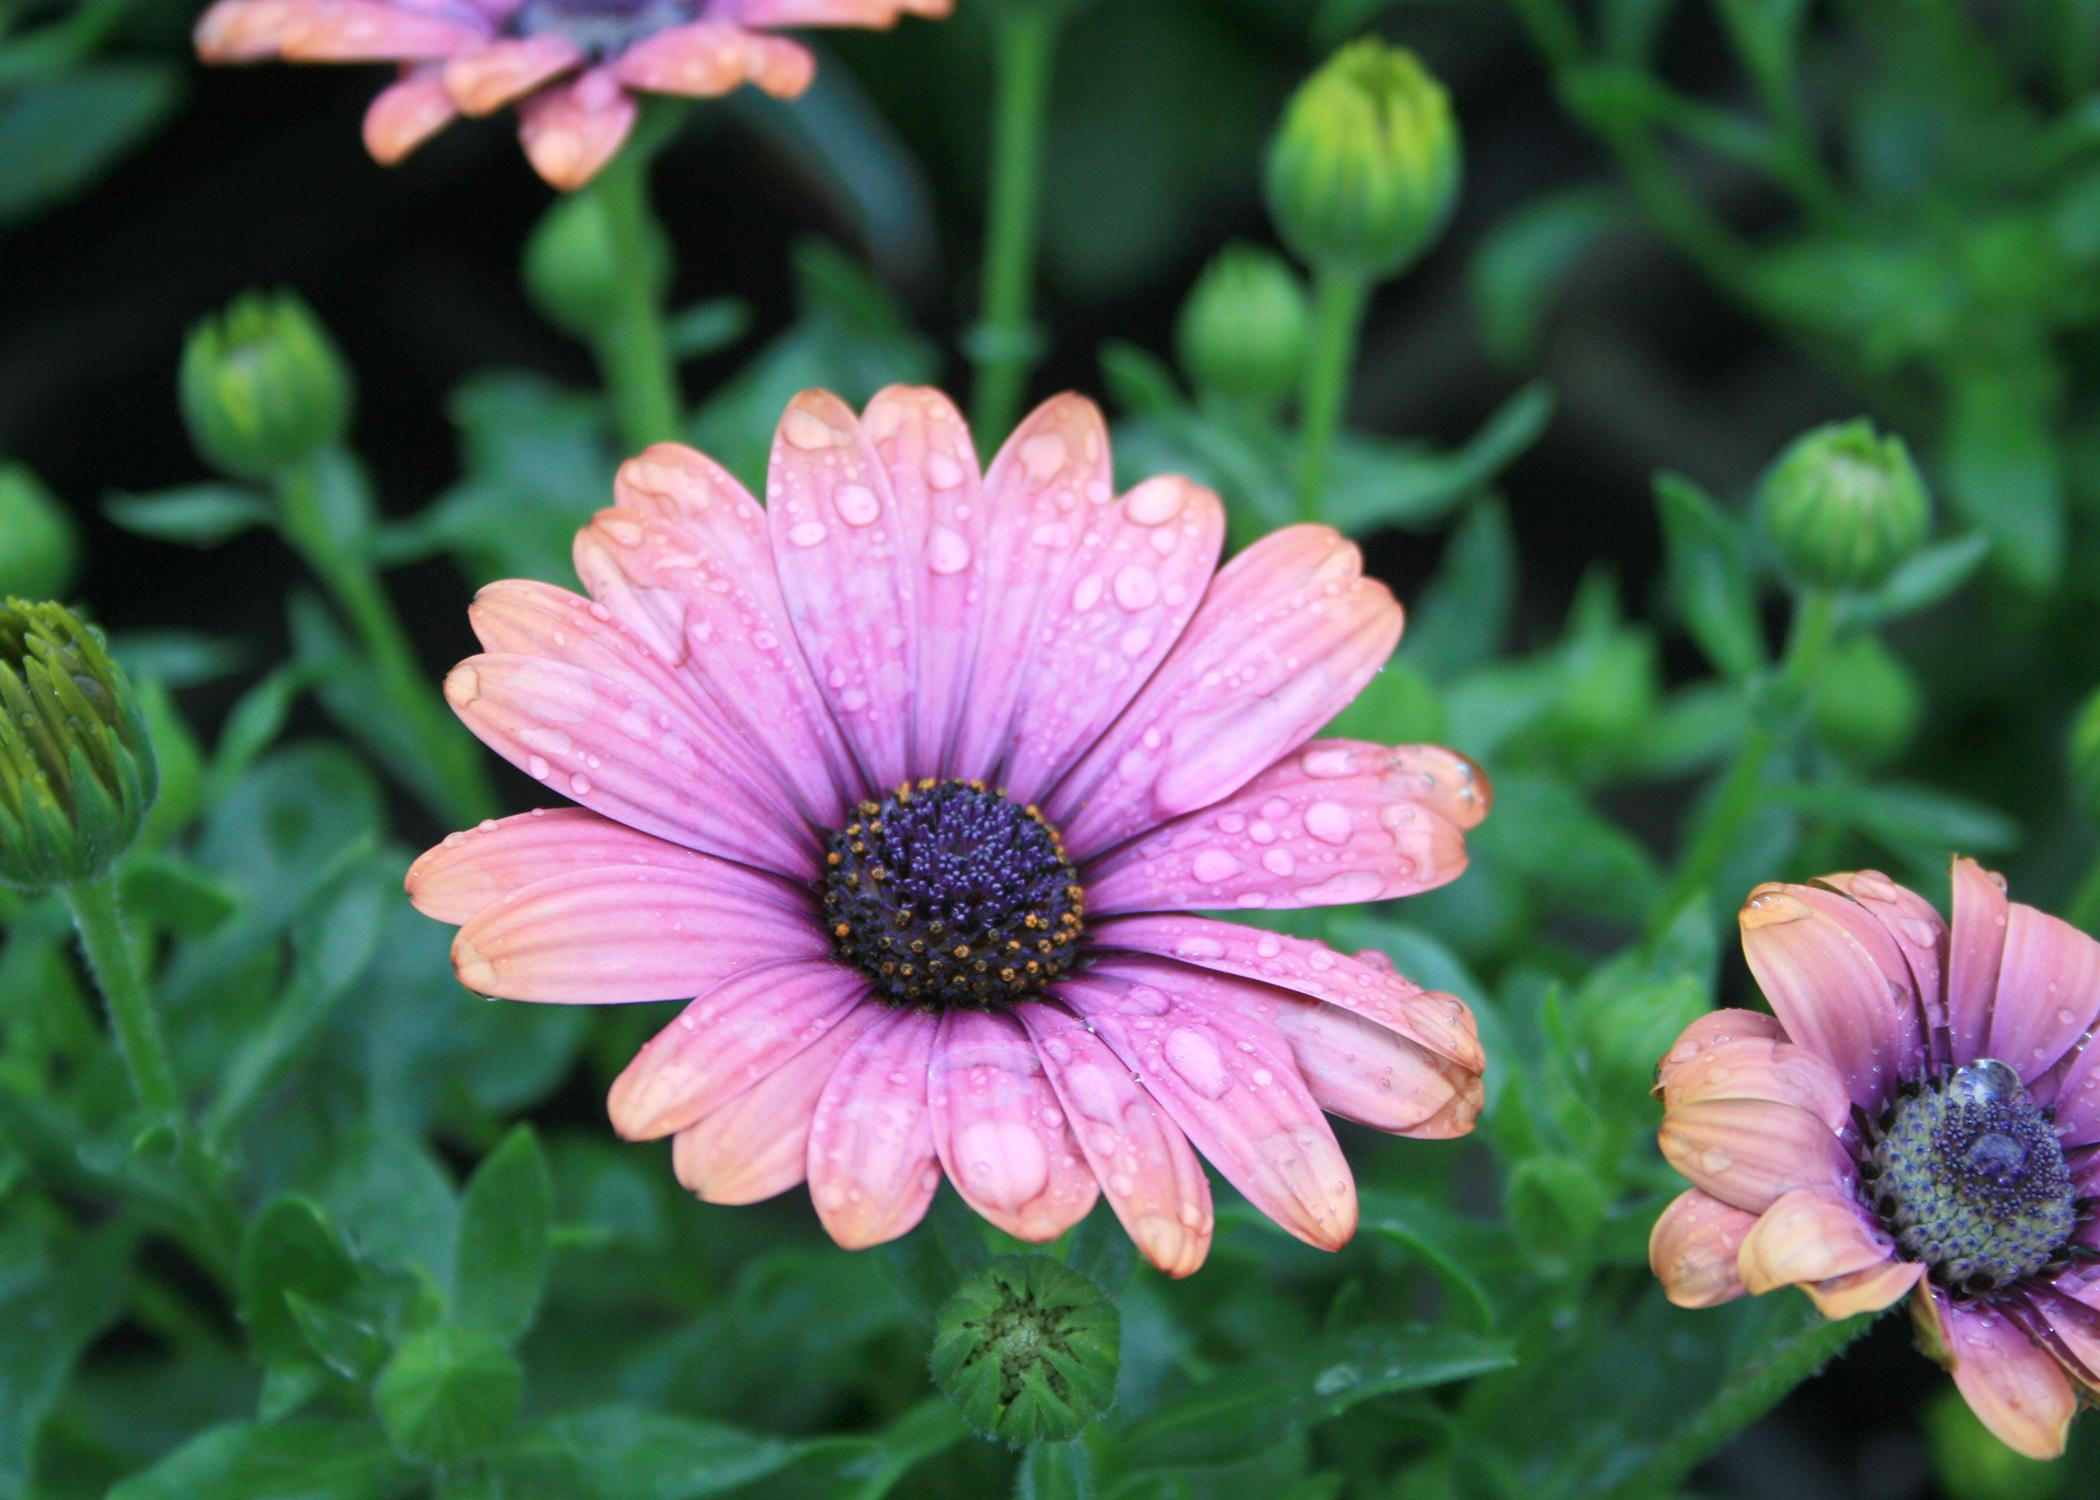 African daisies such as this copper amethyst variety have the familiar center disk and colorful petals and come in colors ranging from white to yellow to bluish purple. They bloom in early spring. (Photo by MSU Extension Service/Gary Bachman)